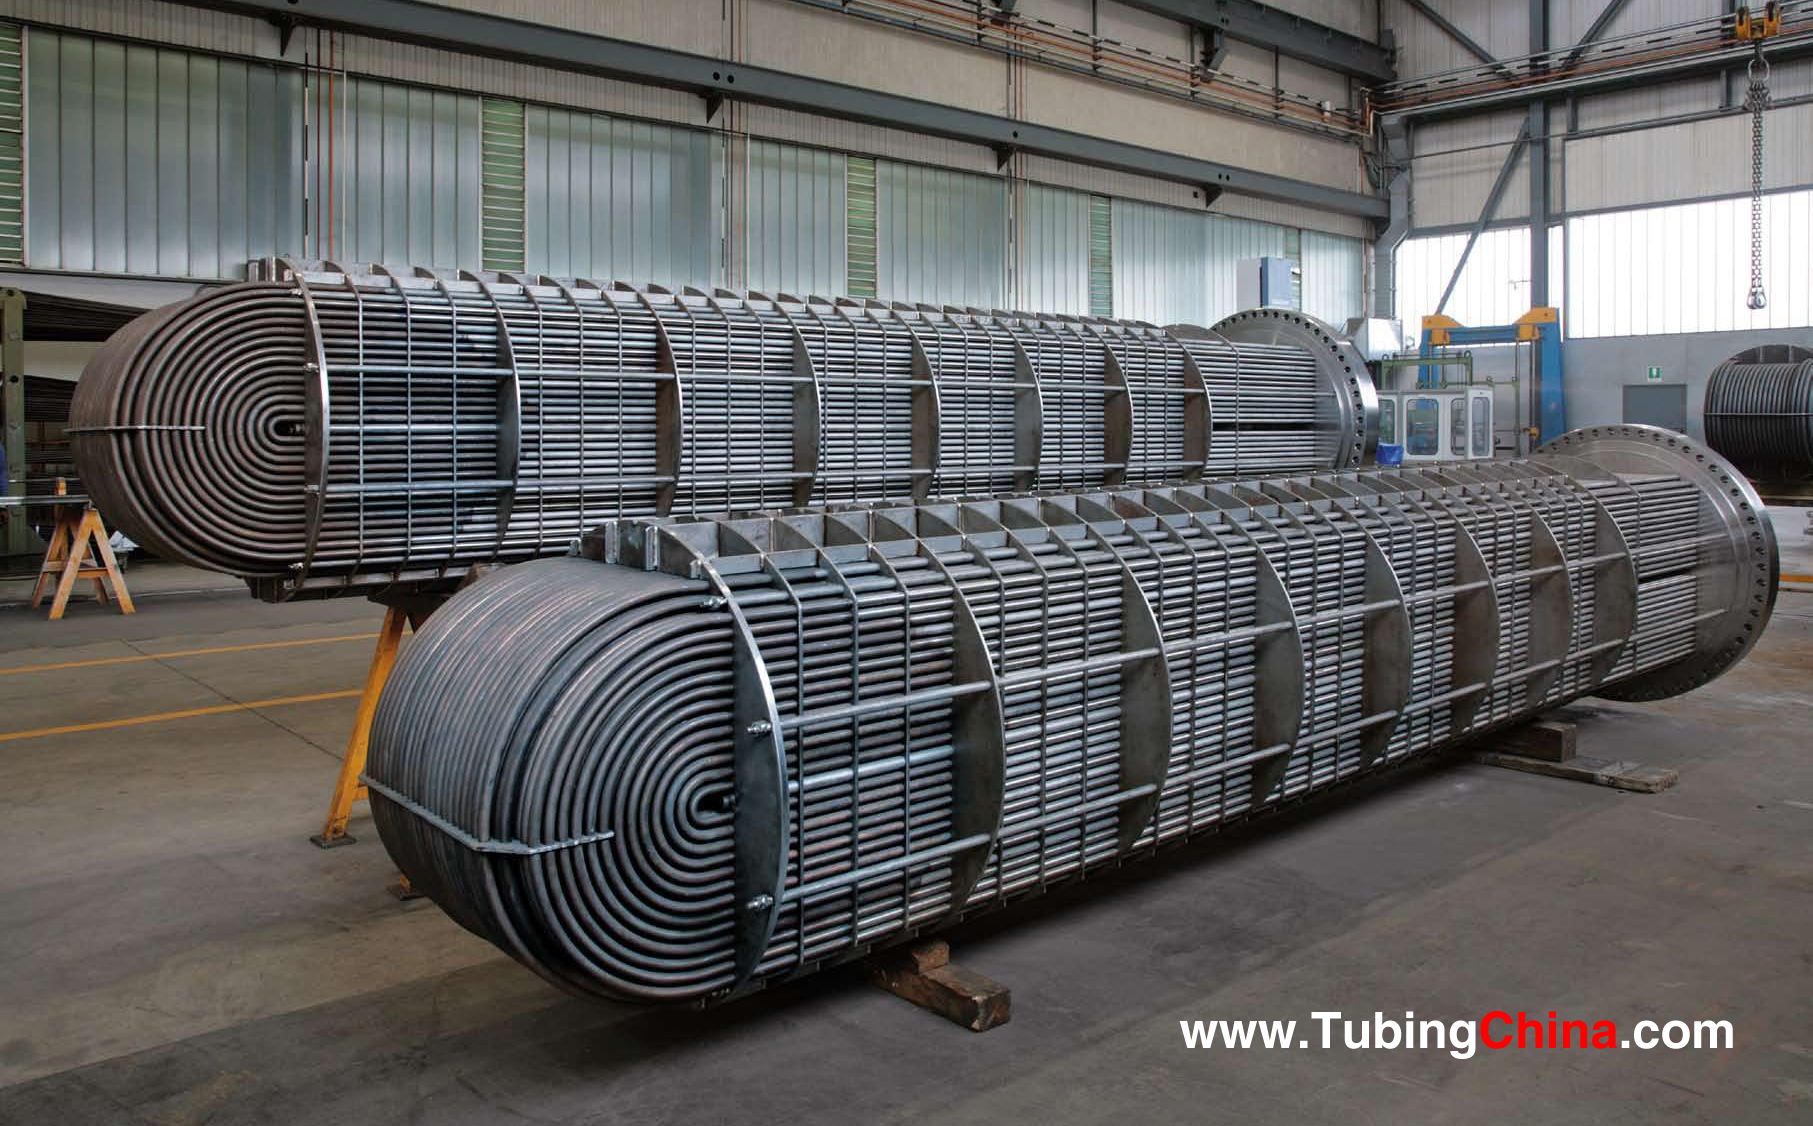 Stainless Steel U Bend Tubes Manufacturer - ASTM A213 ASME